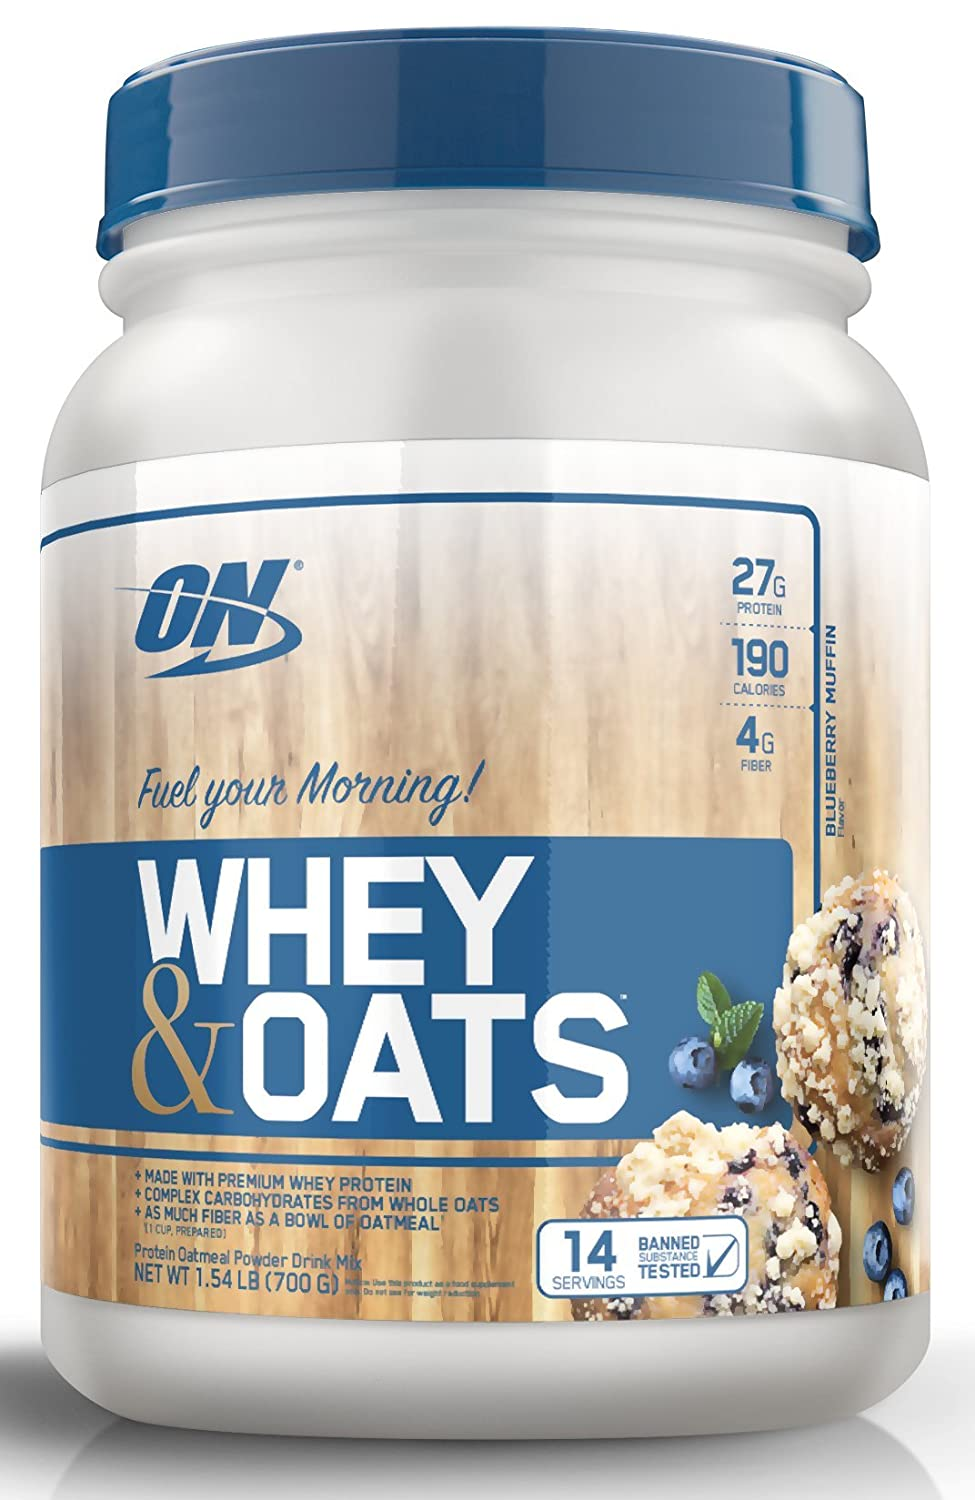 Optimum Nutrition Whey & Oats Protein Powder, Breakfast or Anytime Meal Replacement Shake, Blueberry Muffin, 14 servings